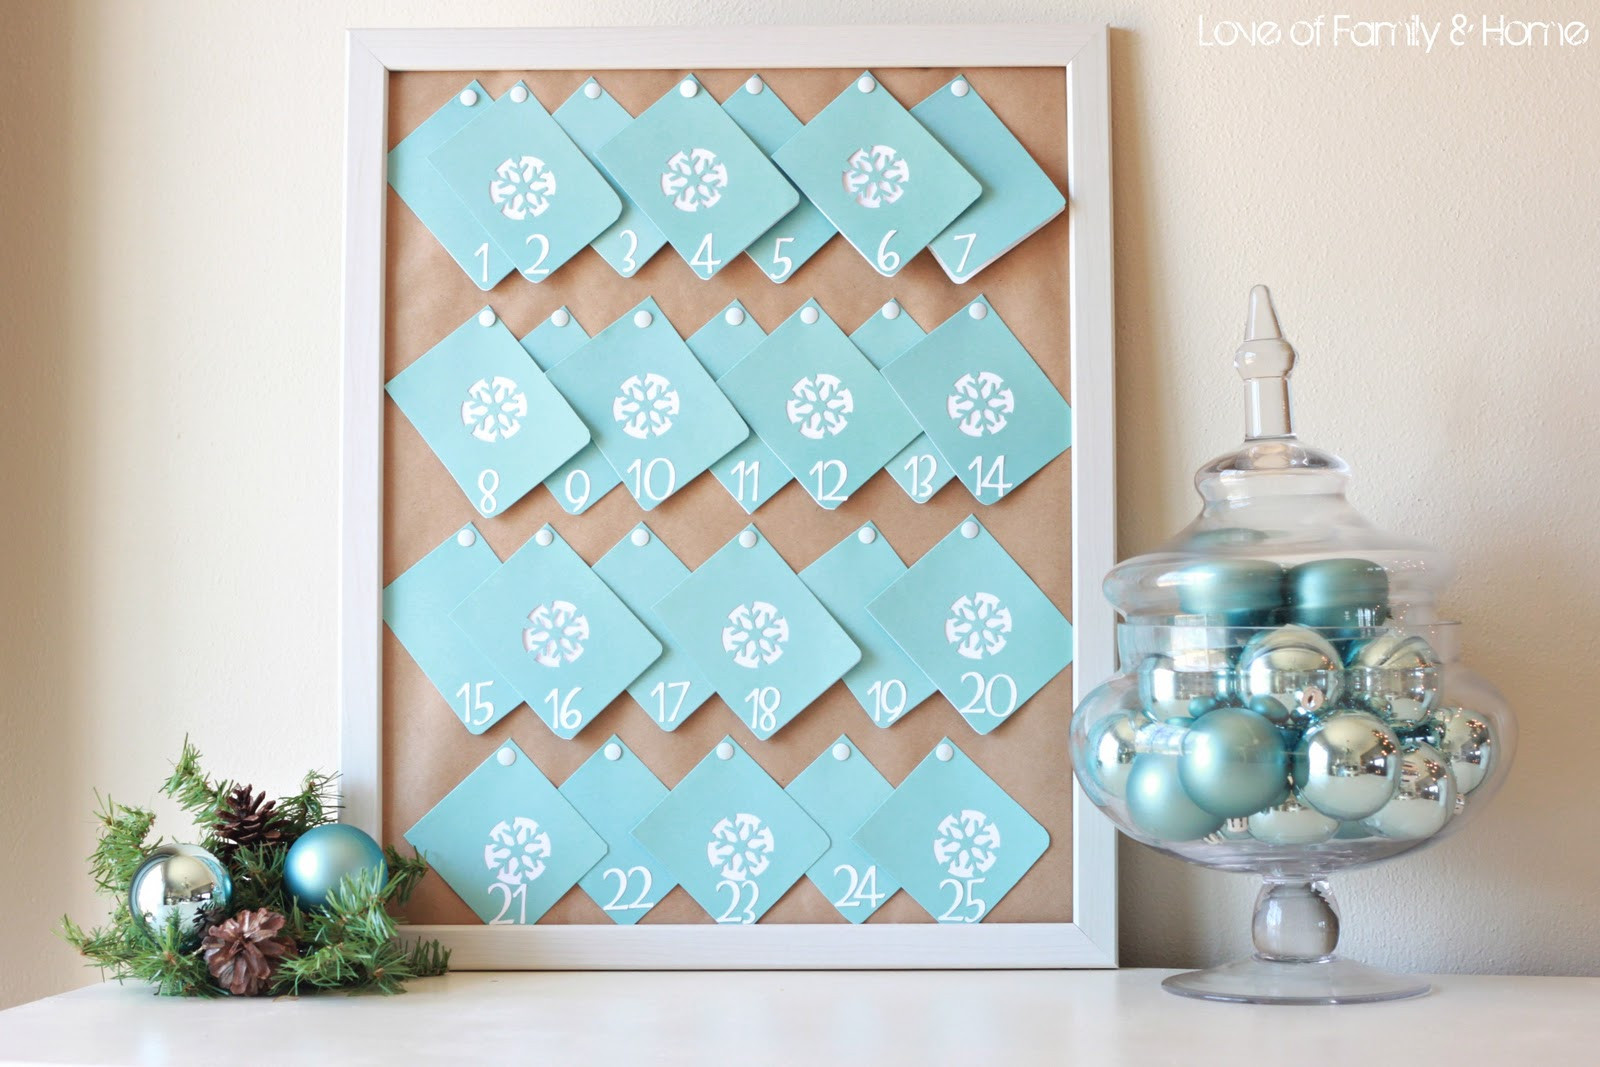 Best ideas about Advent Calendar DIY . Save or Pin DIY Advent Calendar Archives Love of Family & Home Now.